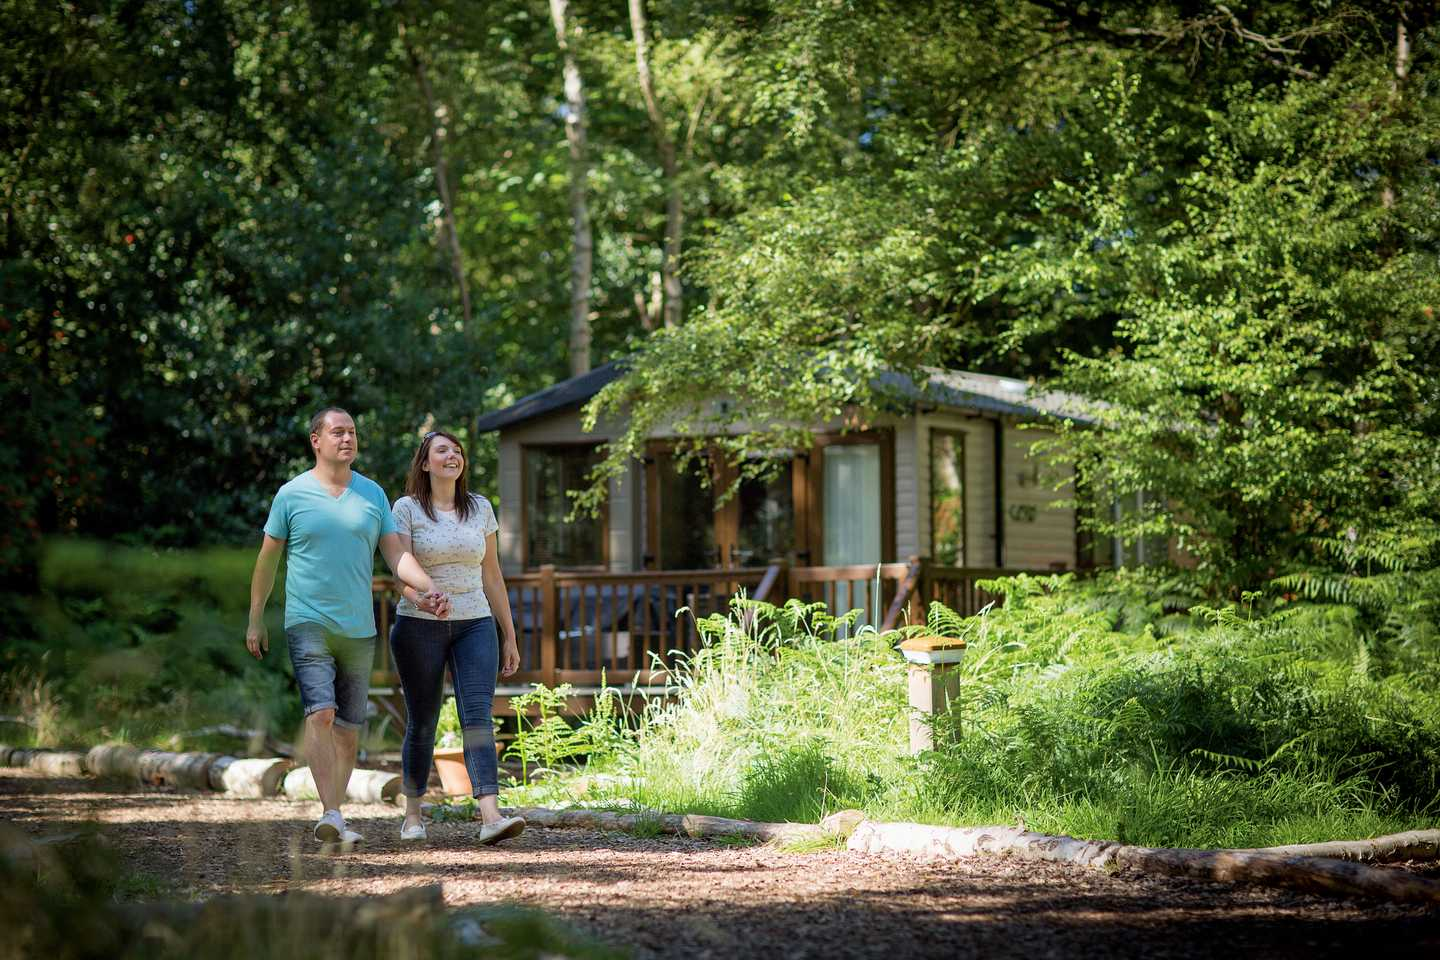 A couple walking hand in hand through a wooded area of Wild Duck Holiday Park with ferns on the ground and a caravan with veranda in the background